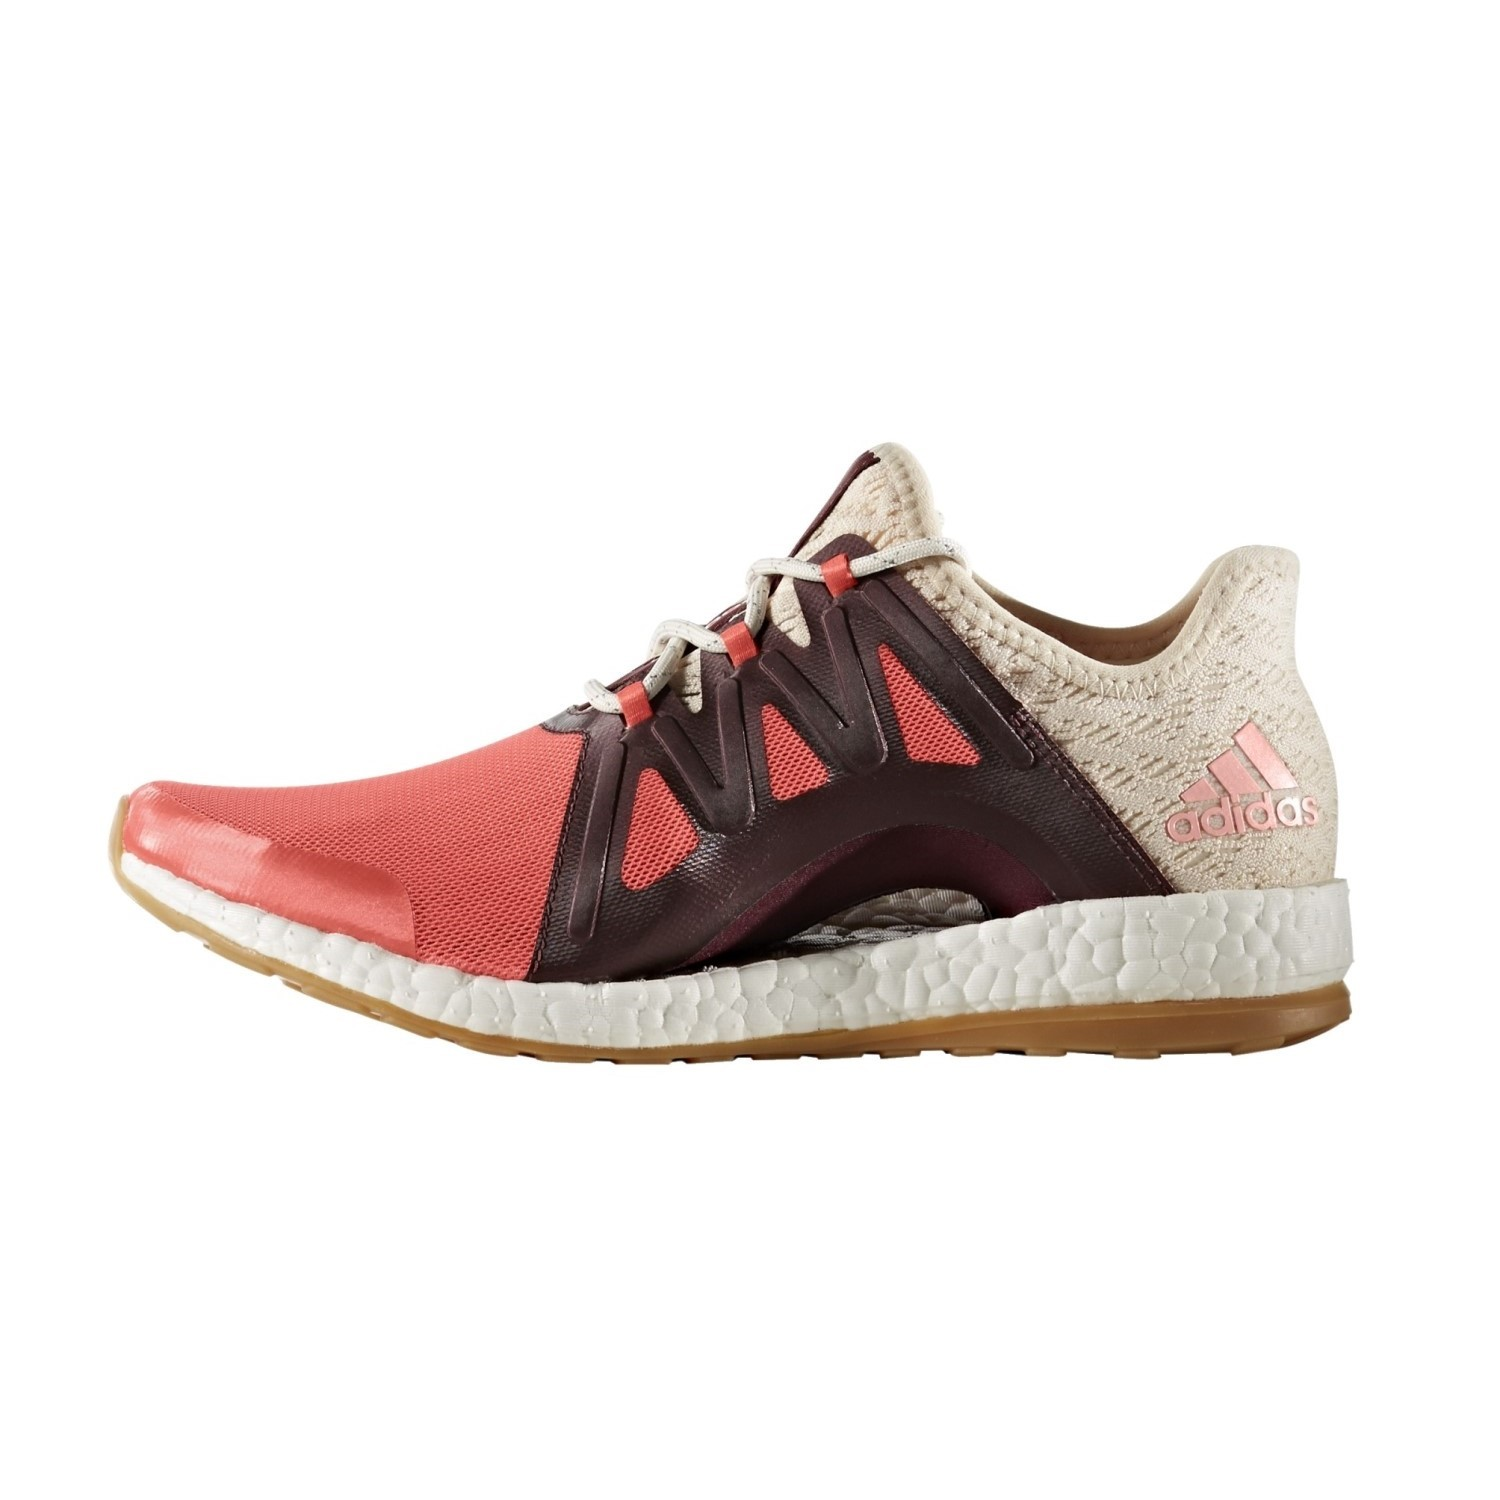 Adidas Pure Boost Xpose Clima - Womens Running Shoes - Easy Coral /Linen/Maroon